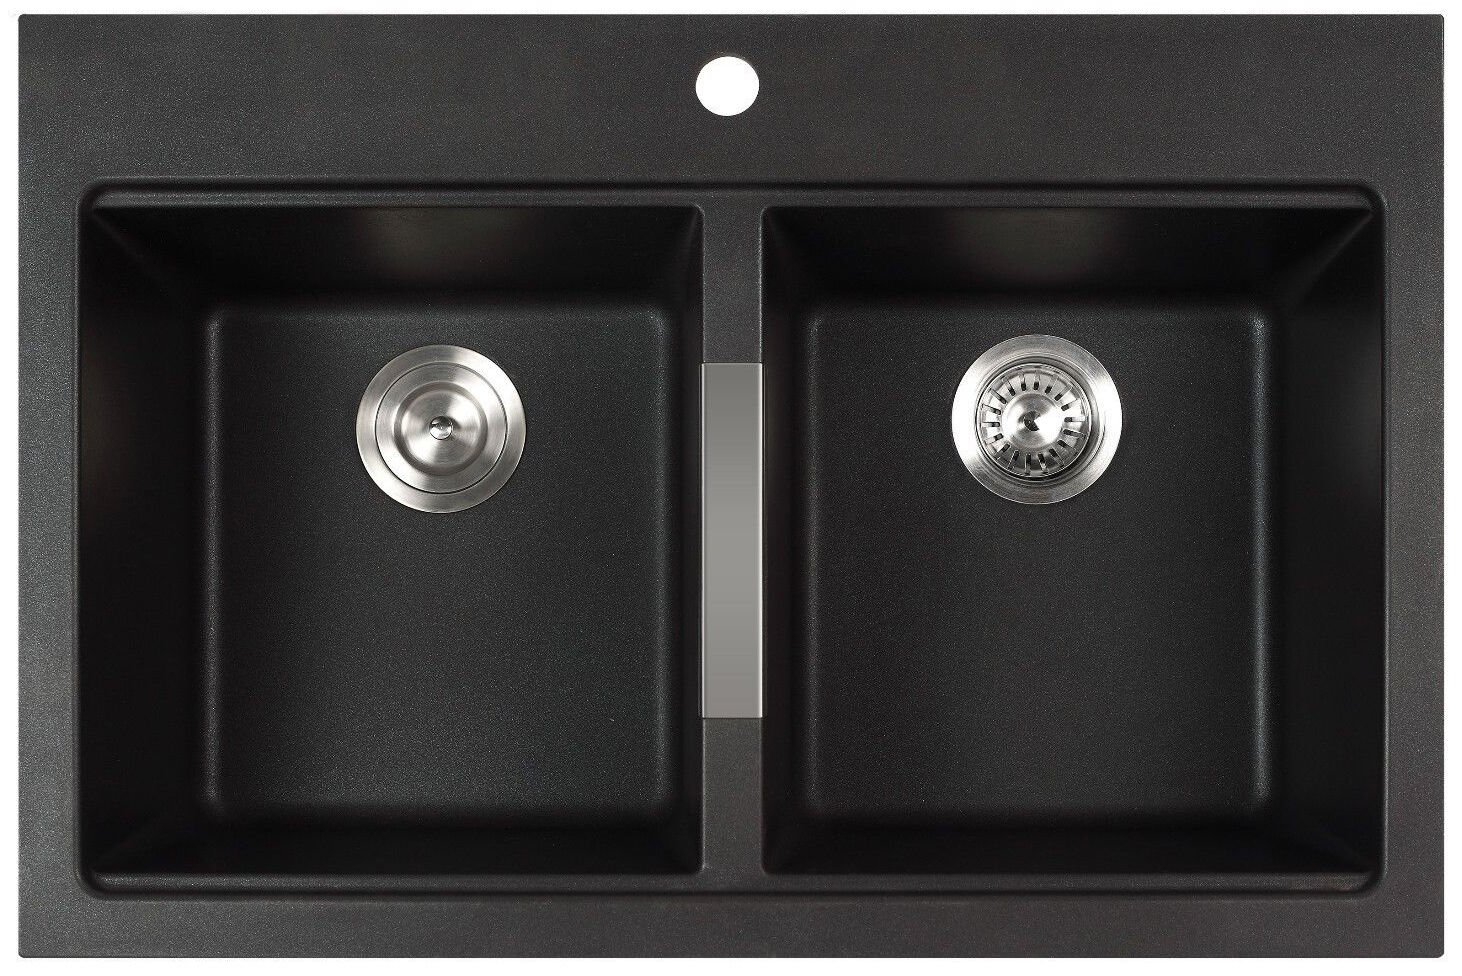 constructed from 80 percent natural granite the kraus kgd433b is a dualmount sink that pairs well with many different types of decor - Kraus Sinks